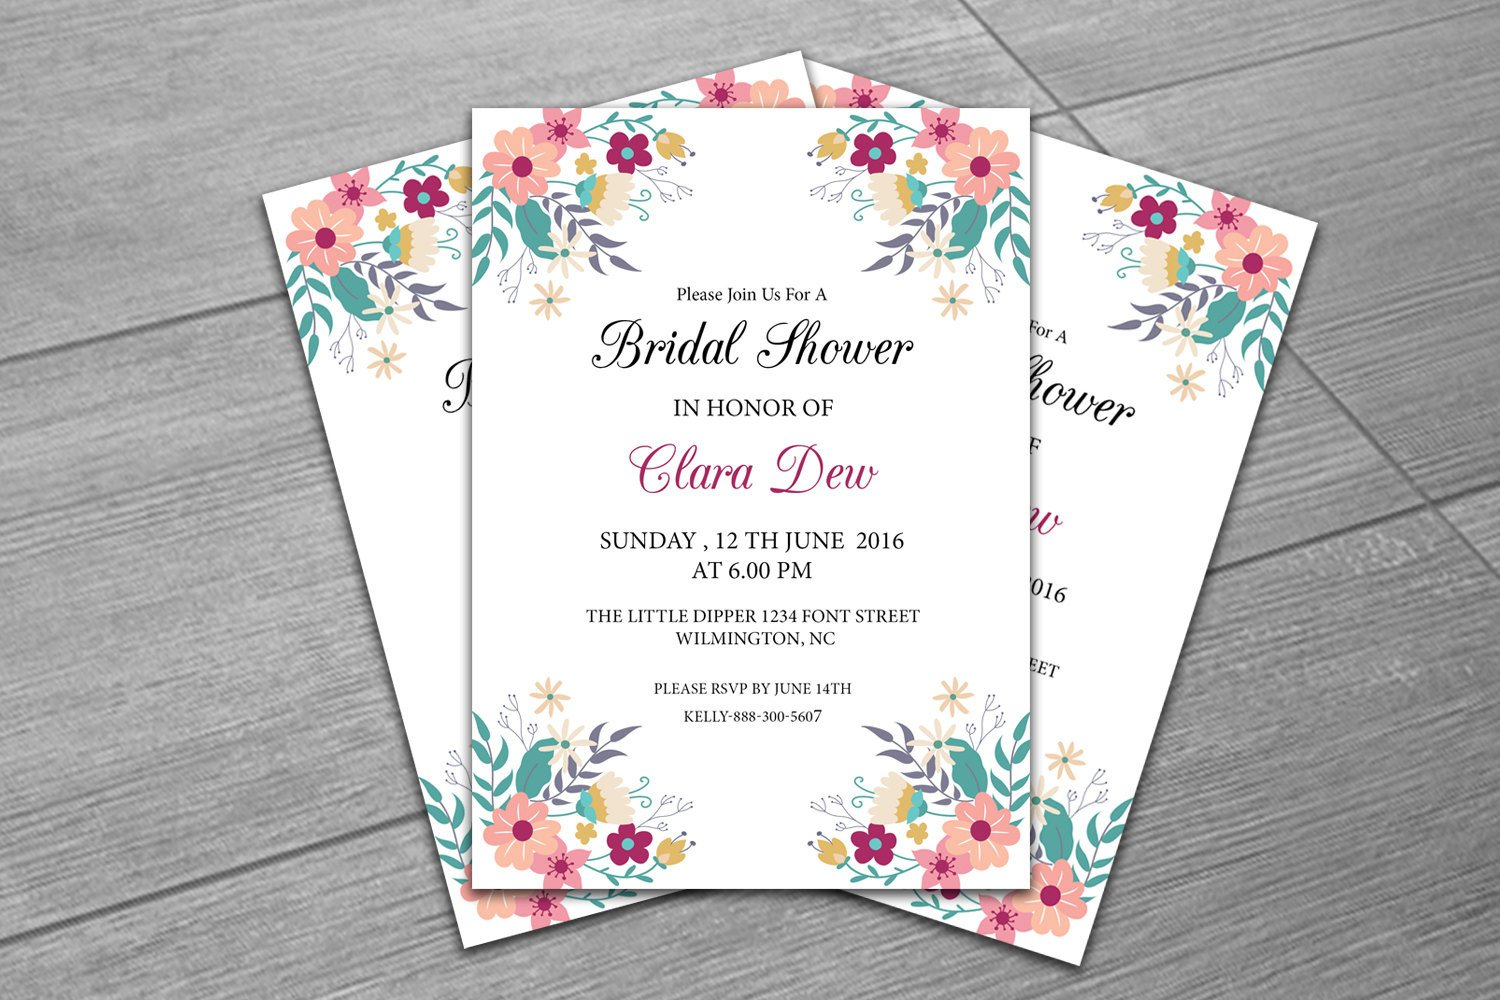 Wedding Shower Invitation Templates Sale Bridal Shower Invitation Template Diy Wedding Shower